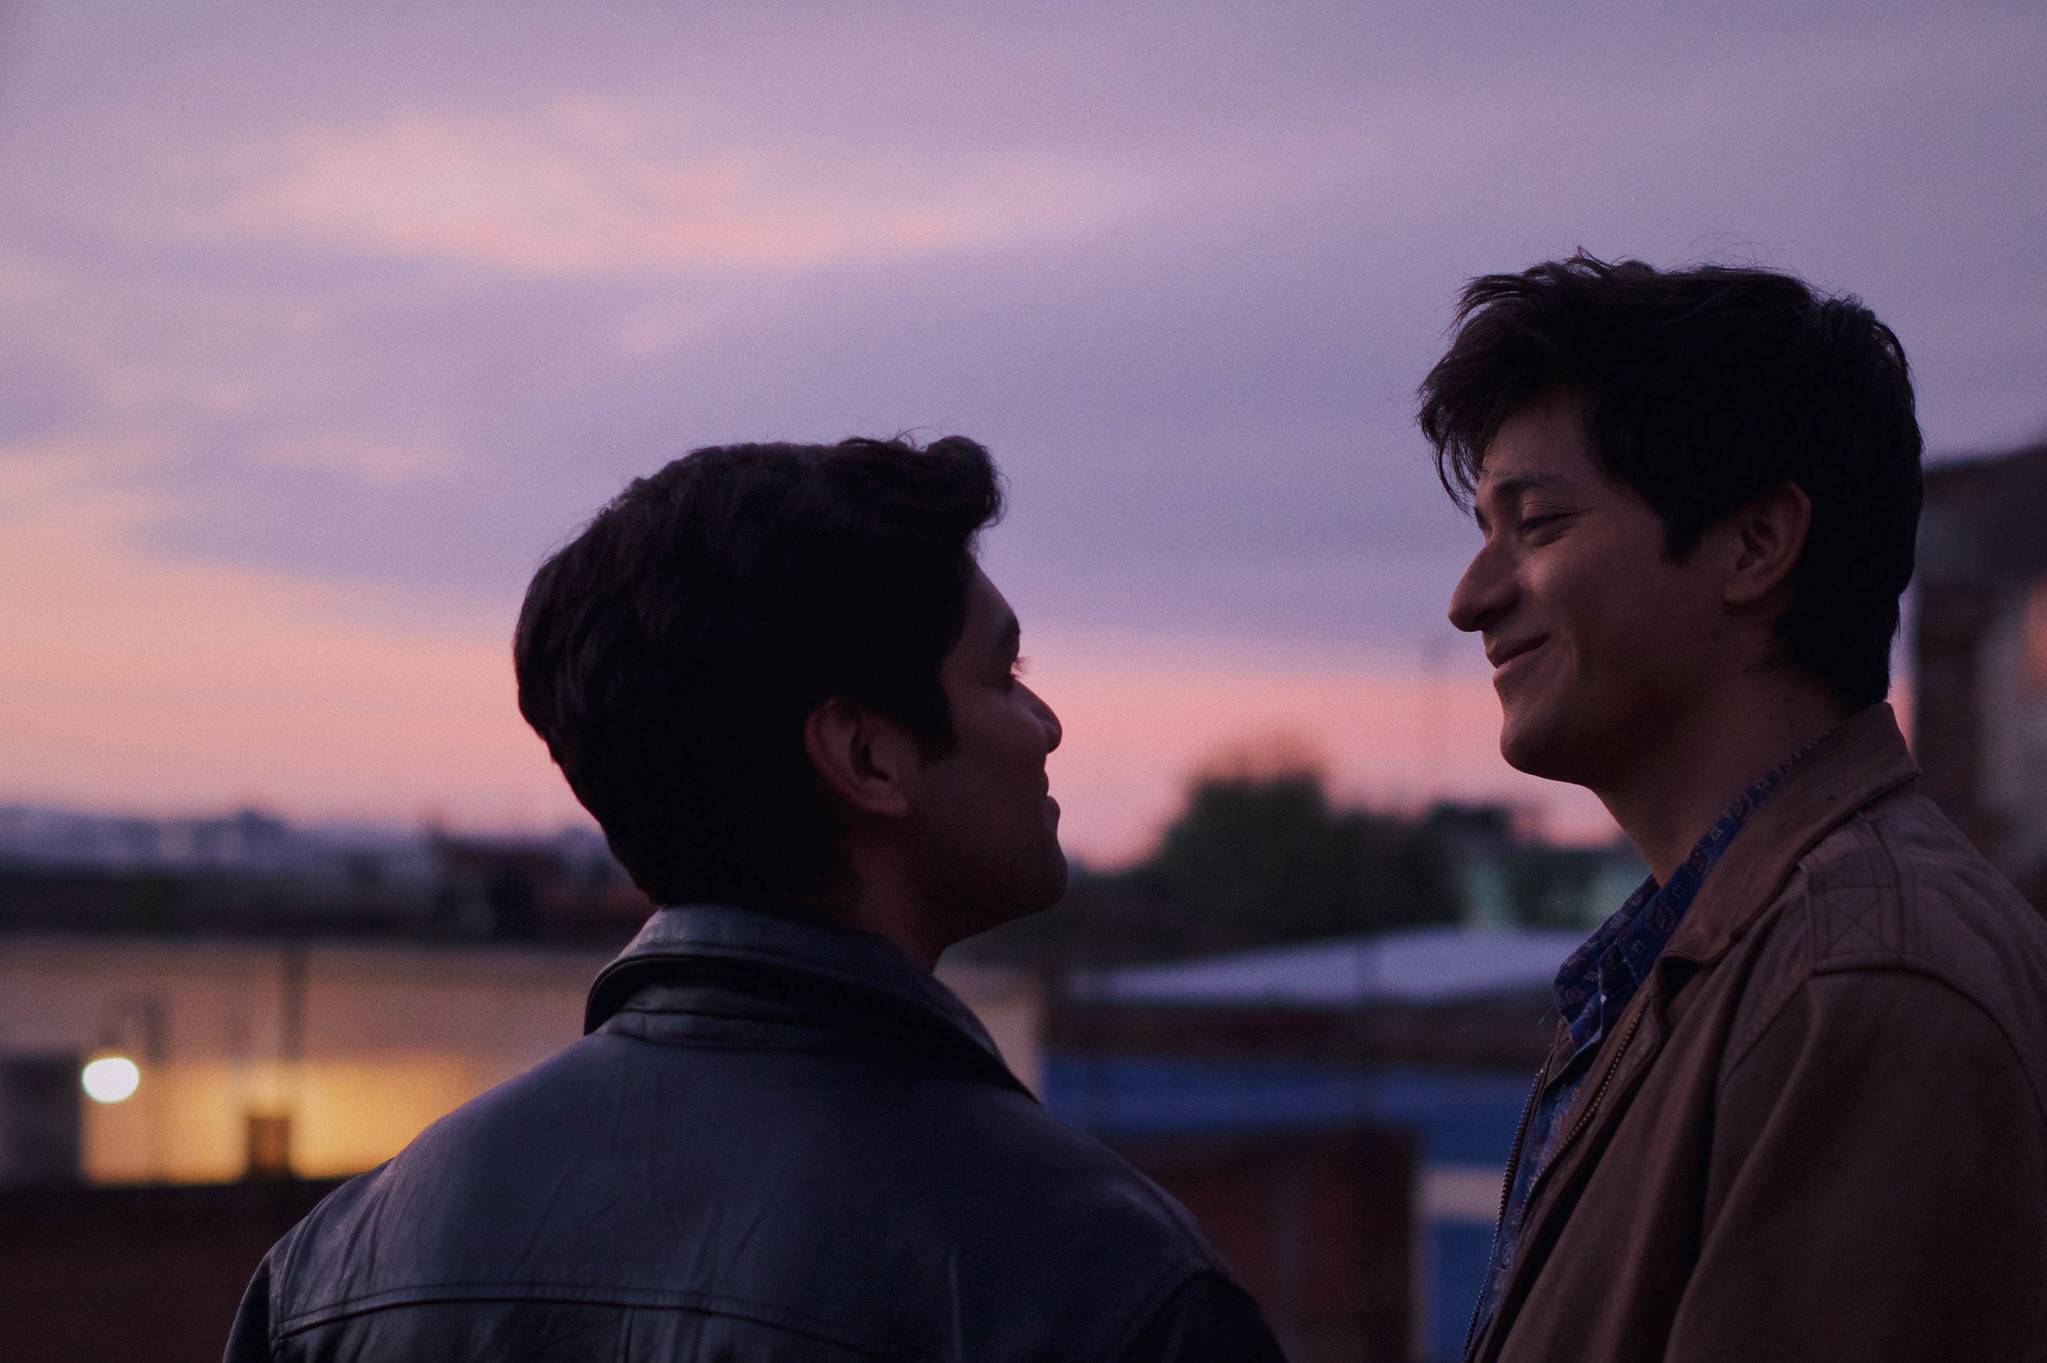 REVIEW: 'Te Llevo Conmigo' Follows a Gay Mexican Couple Dealing With Homophobia & Xenophobia